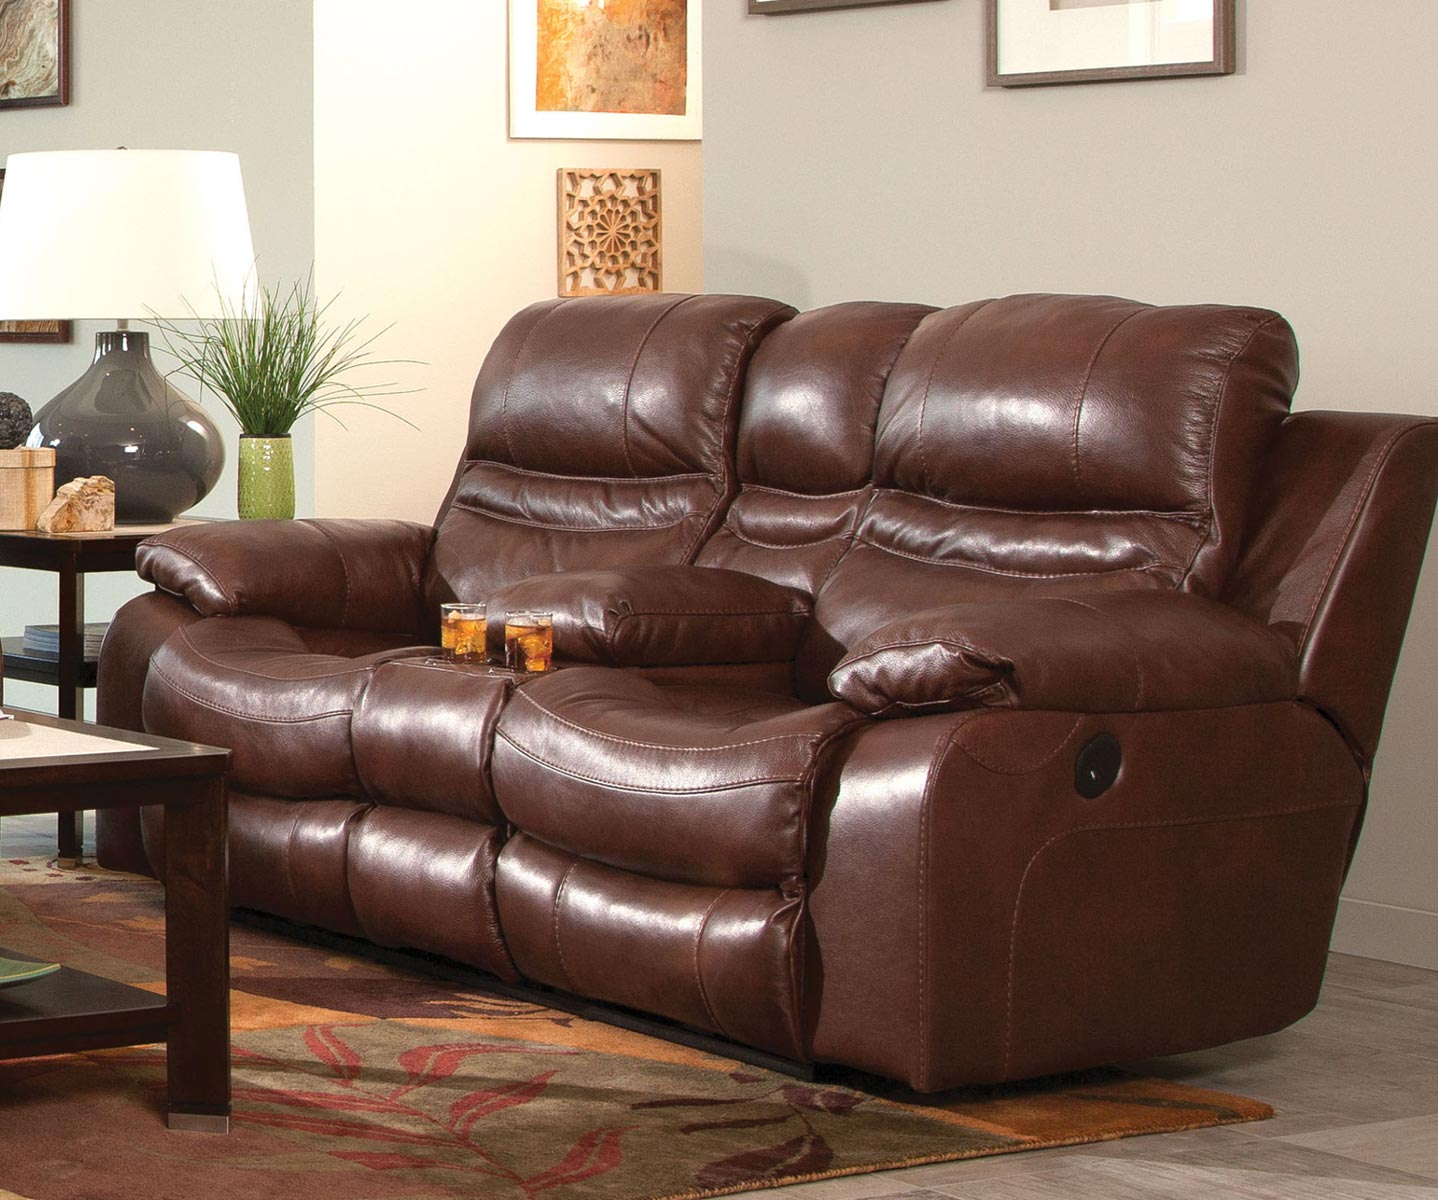 CatNapper Patton Top Grain Italian Leather Lay Flat Power Reclining Console Loveseat - Walnut & CatNapper Patton Top Grain Italian Leather Lay Flat Power ... islam-shia.org